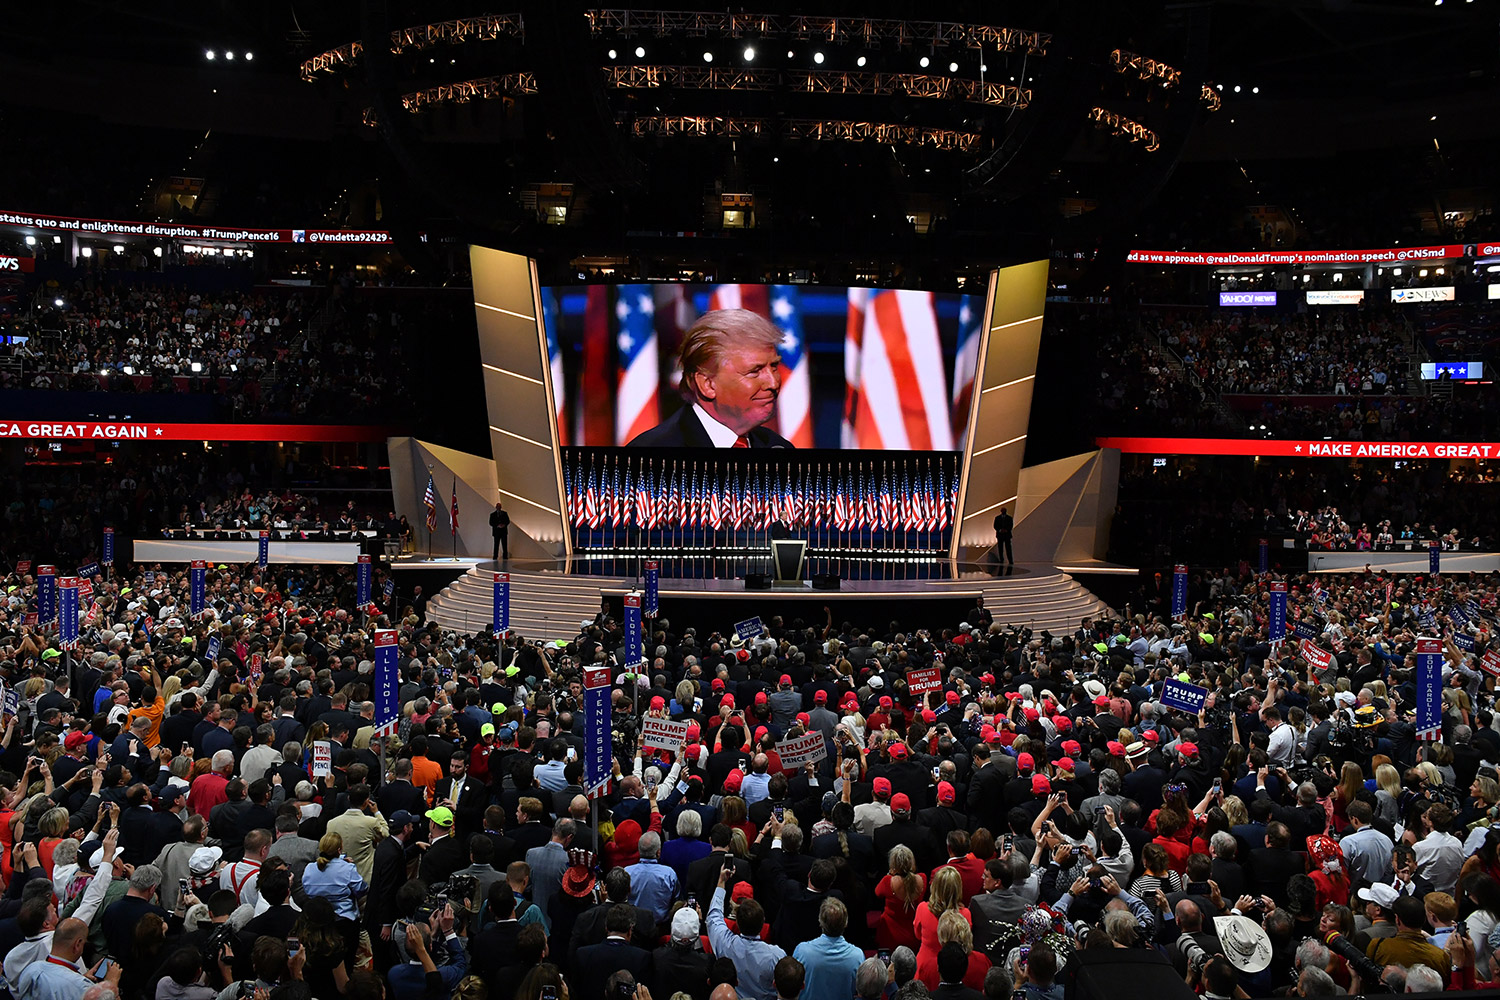 Donald Trump addresses the Republican National Convention in Cleveland on July 21, the night he accepted the party's presidential nomination.